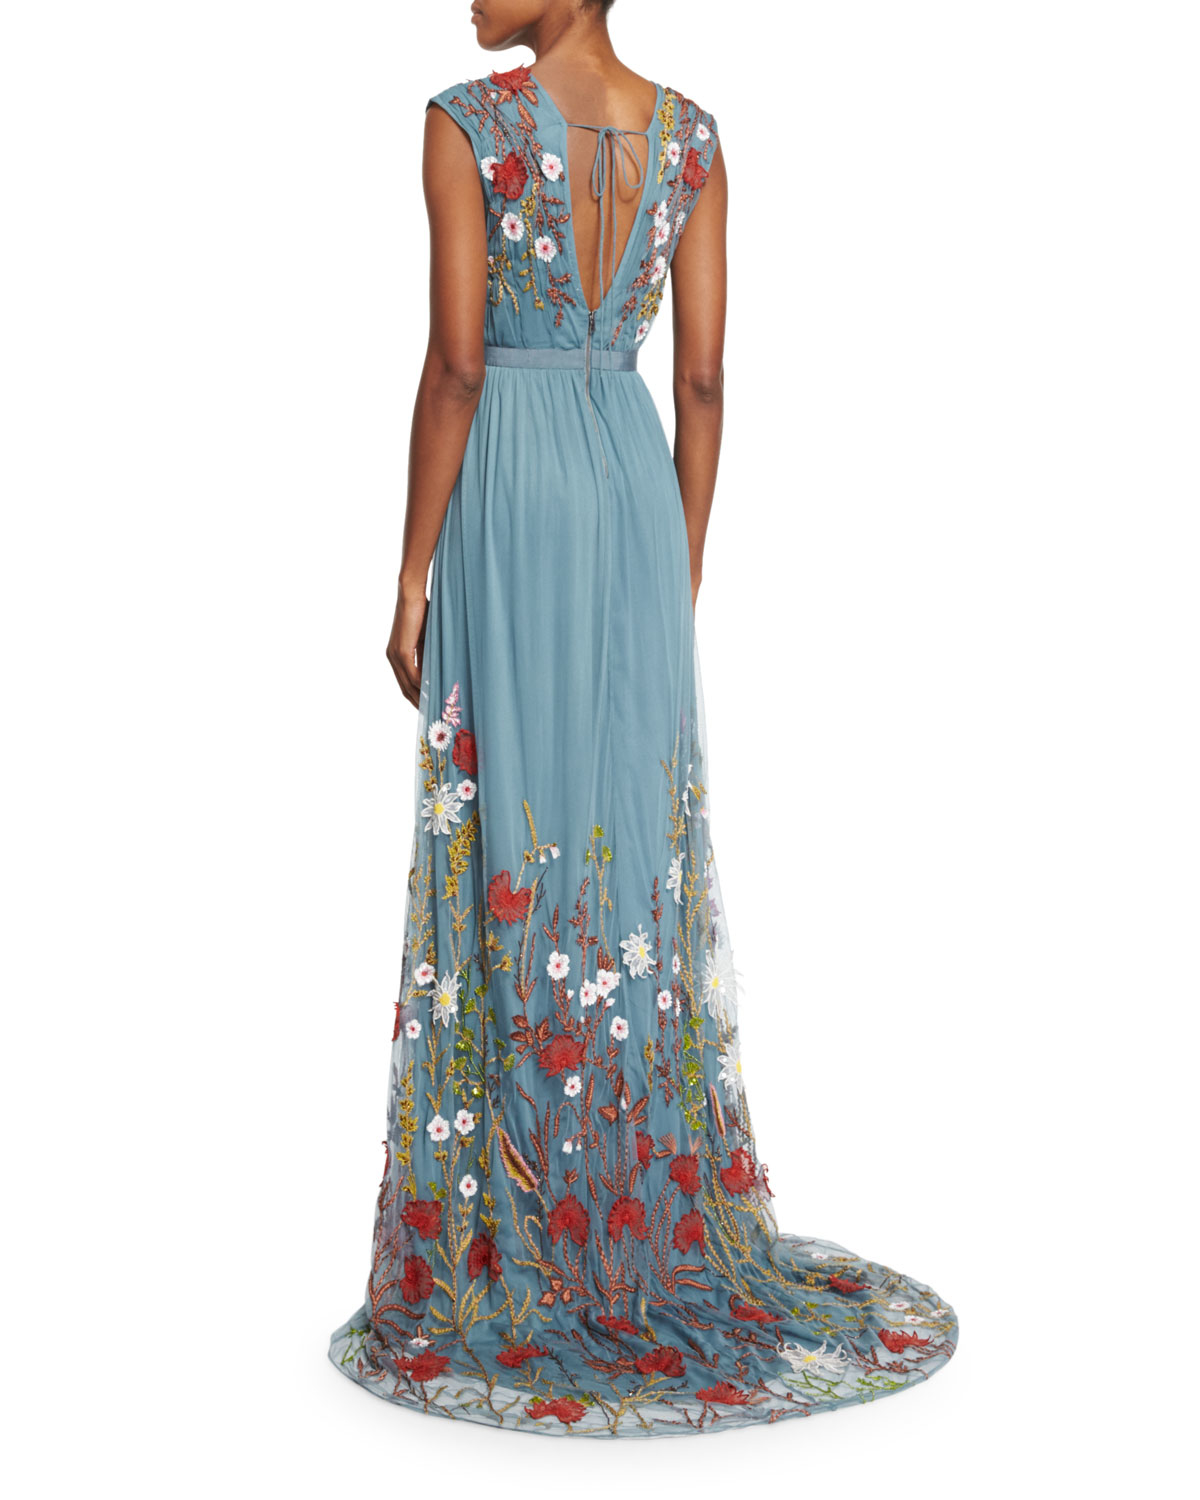 Alice olivia merrill floral embroidered sleeveless maxi